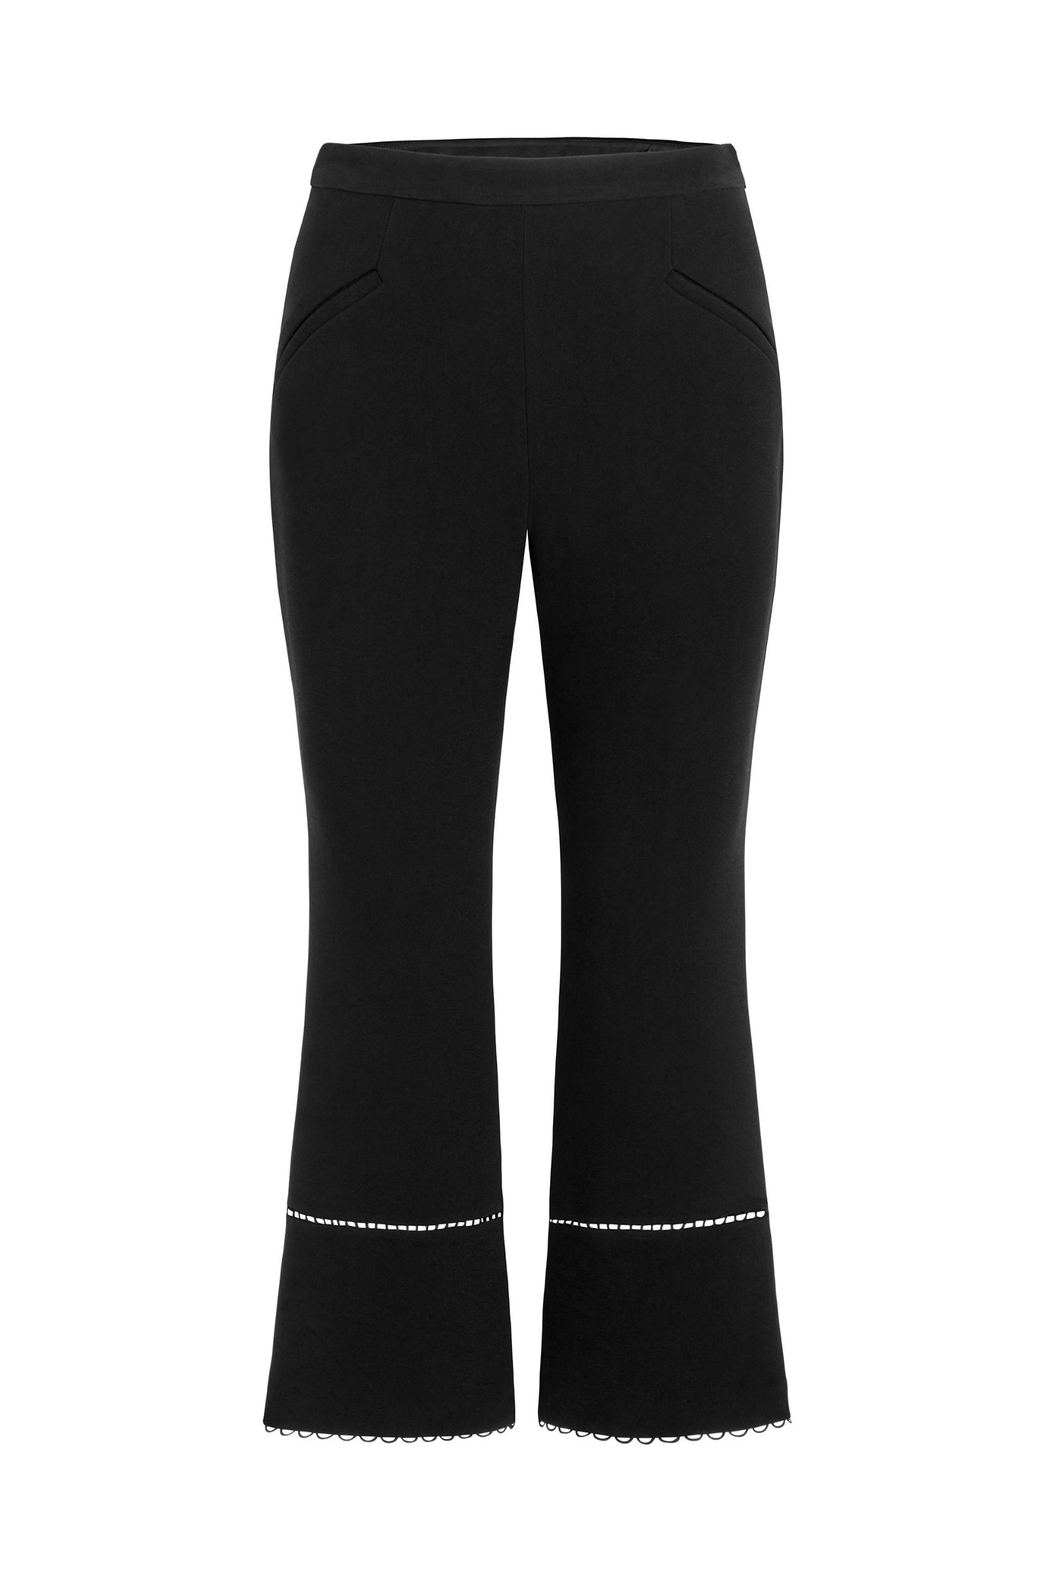 Rachel Zoe Stretch-Crepe Cropped Flare - Front Cropped Image